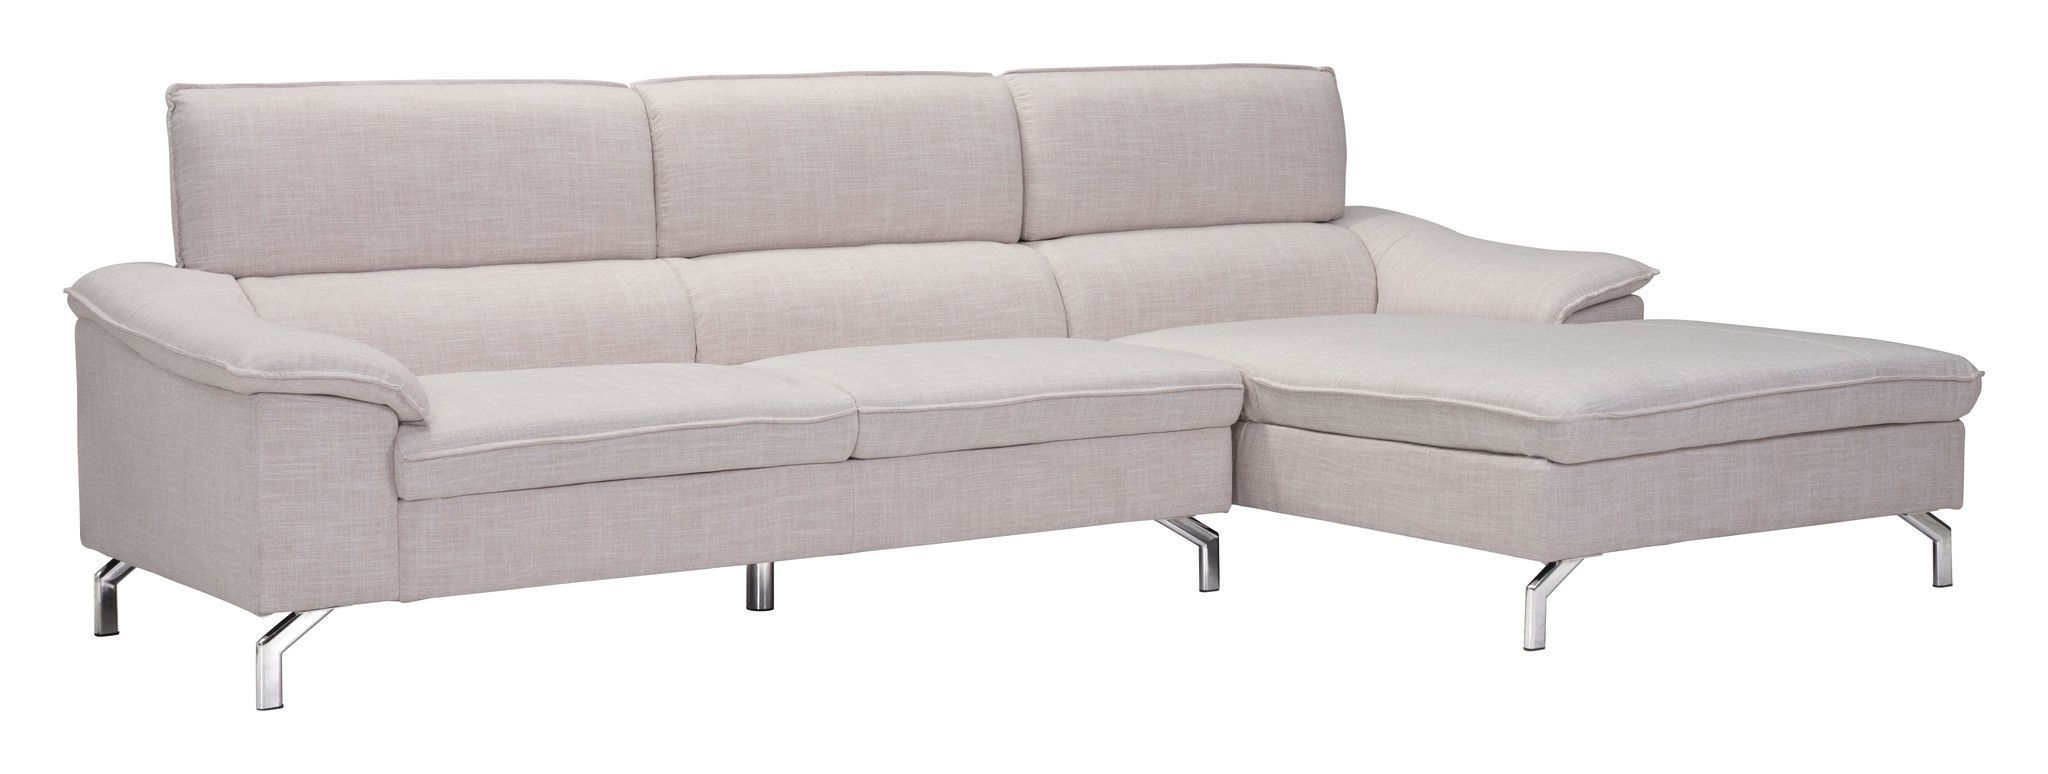 Ephemeral Right Hand Facing Sectional Sofa in Beige Poly Linen